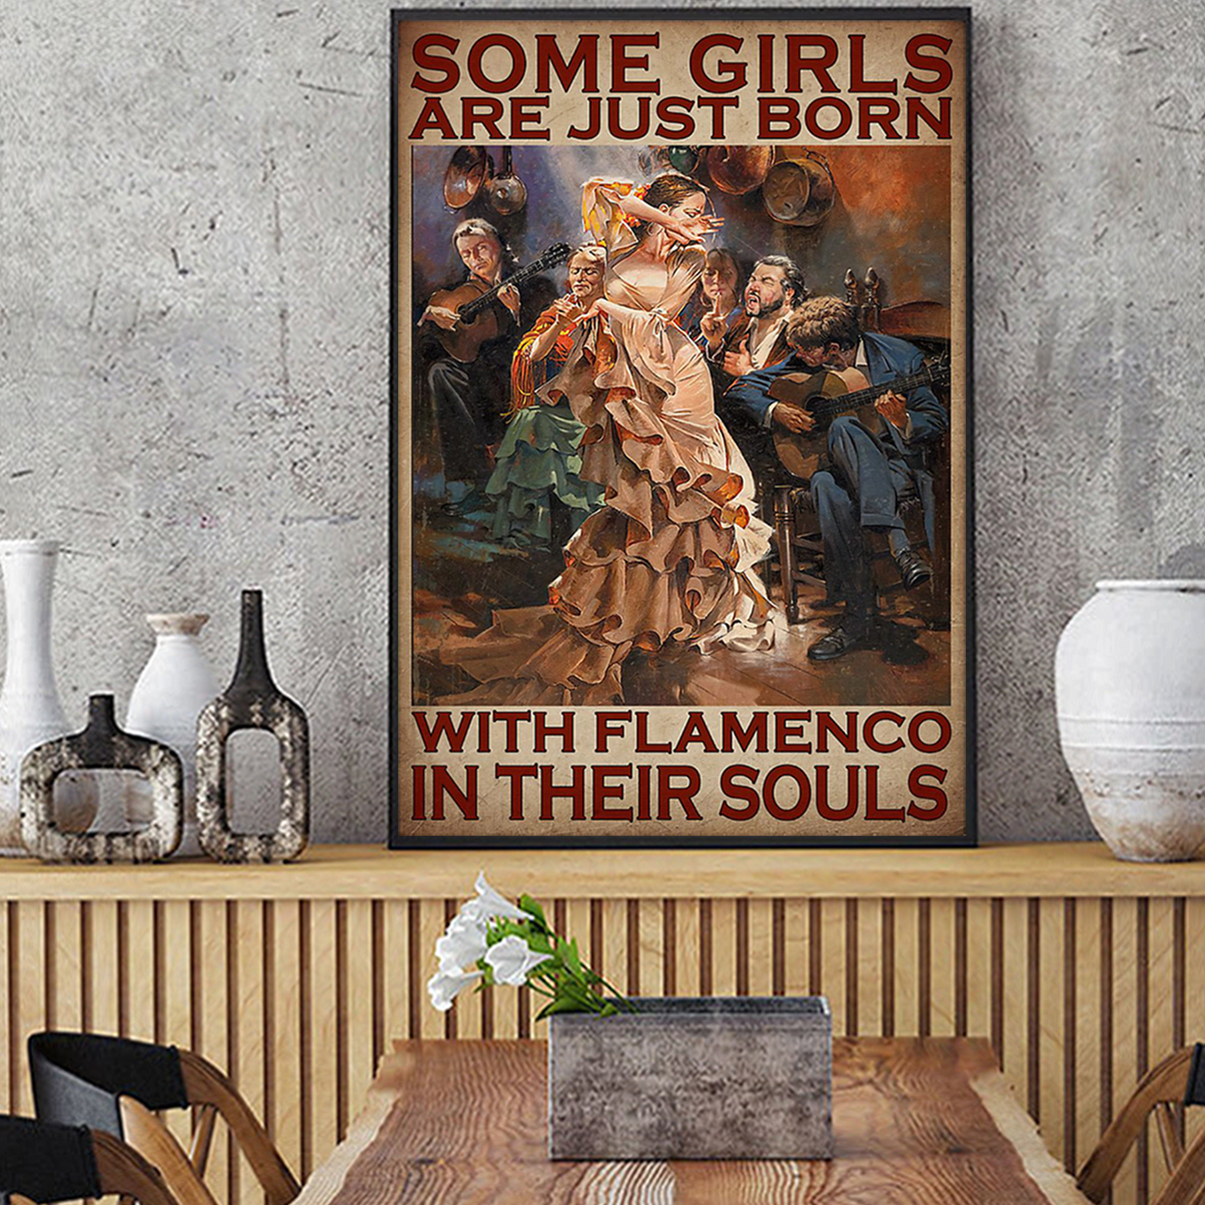 Some girls are just born with flamenco in their souls poster A1